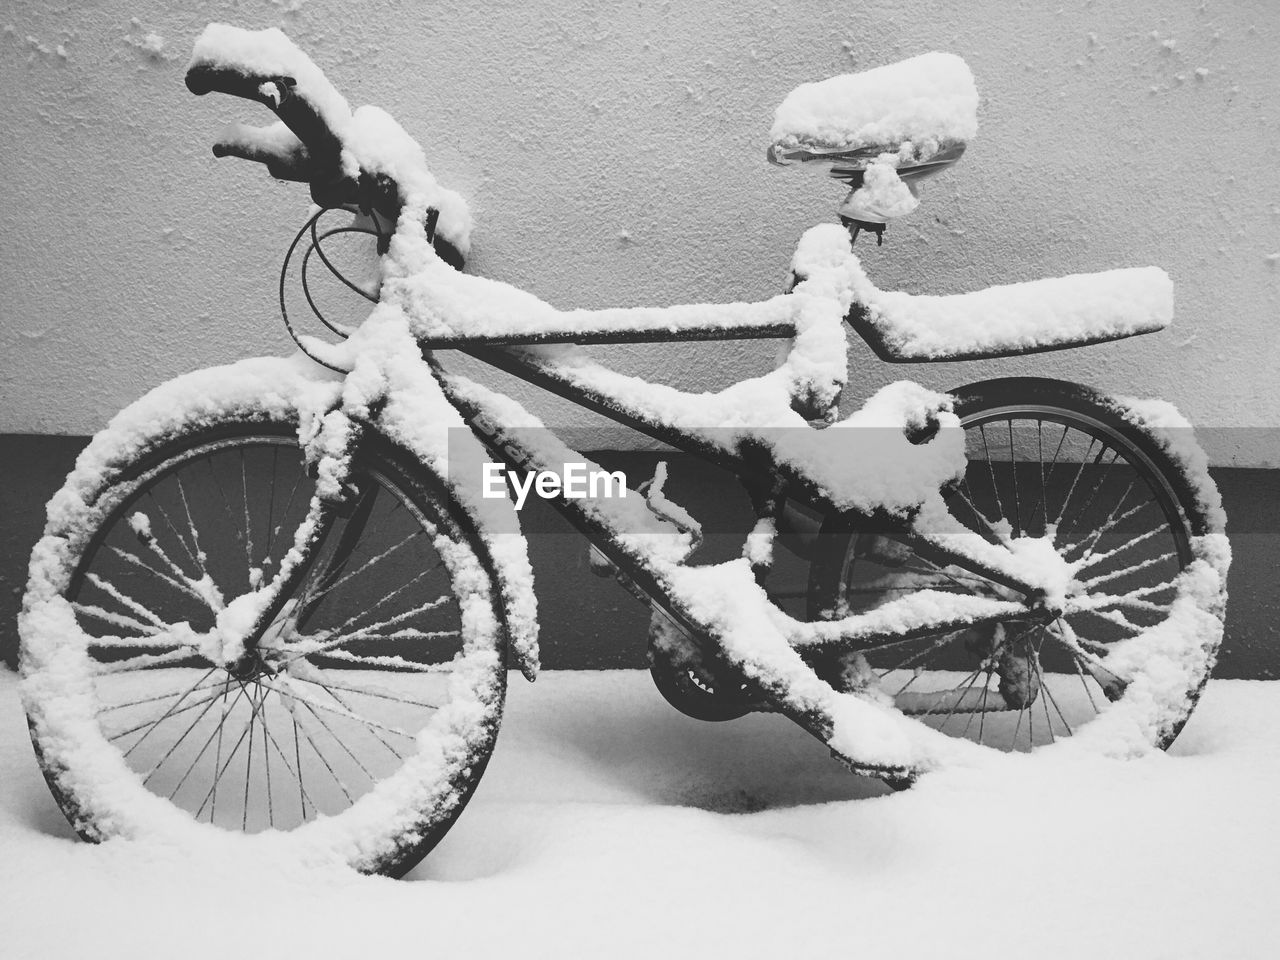 bicycle, transportation, winter, mode of transport, cold temperature, snow, outdoors, day, land vehicle, stationary, wheel, no people, spoke, close-up, nature